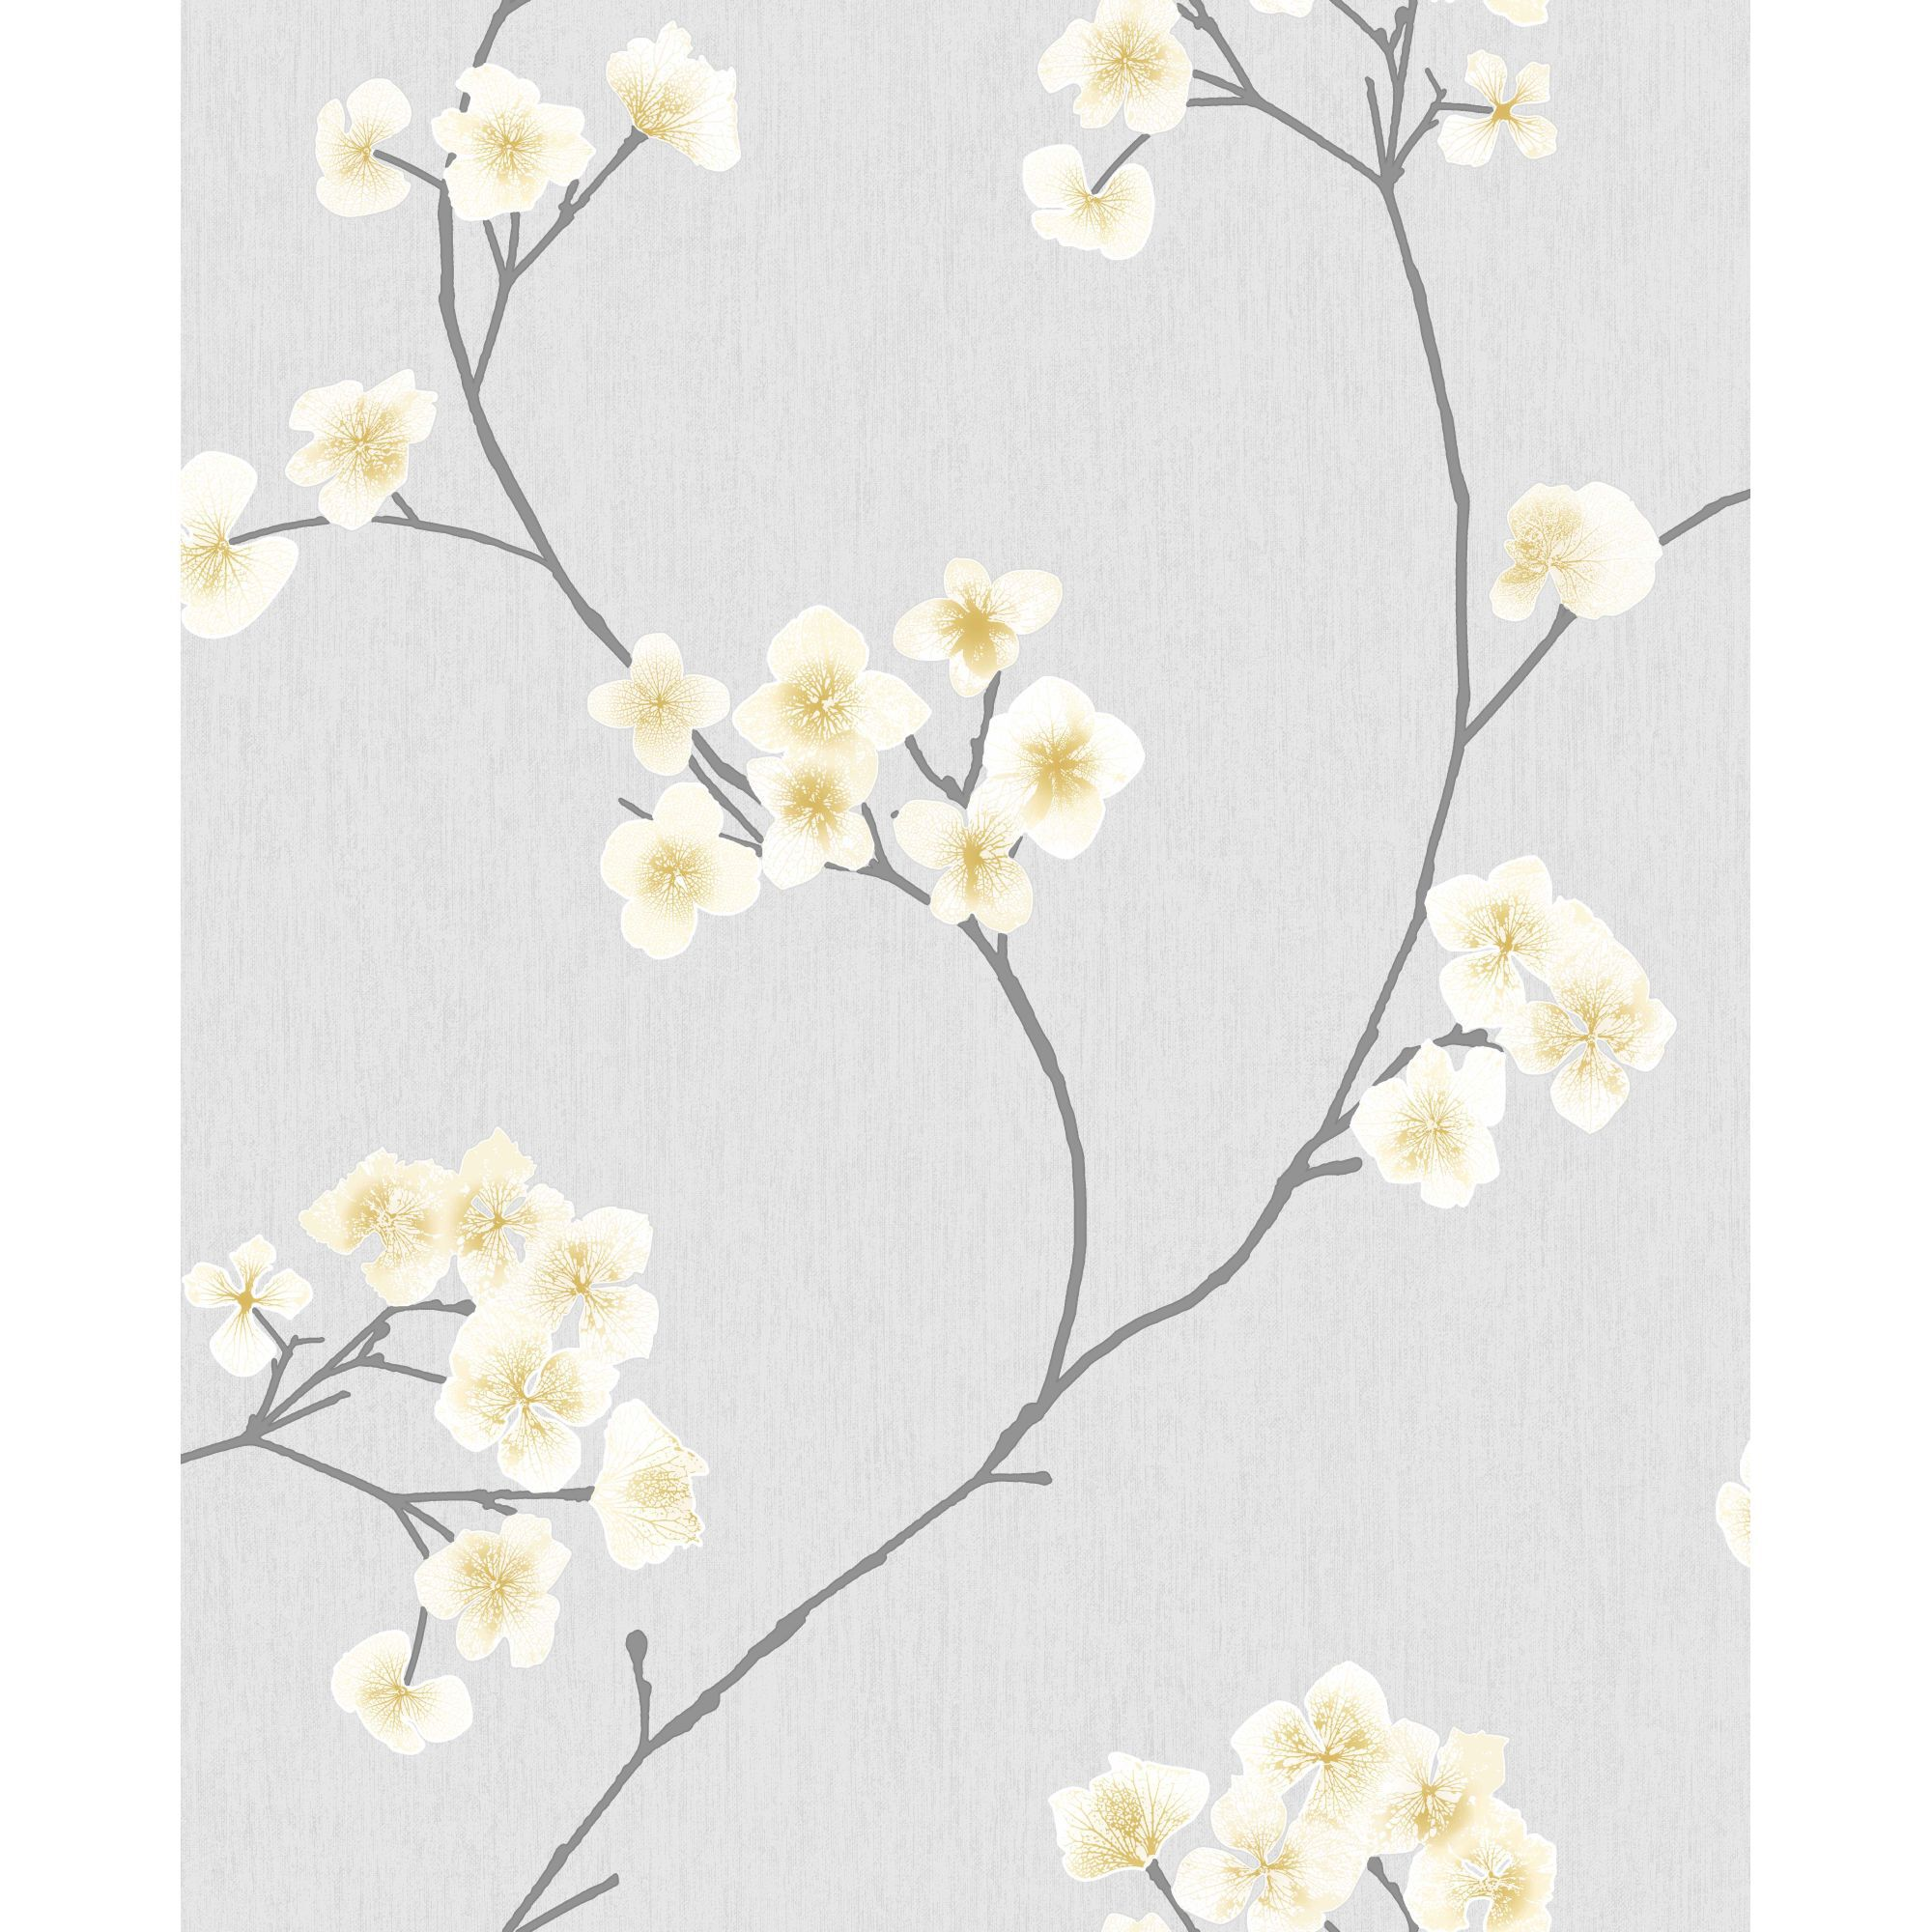 wall prints for living room australia yellow grey and black ideas radiance ochre wallpaper | graham & brown